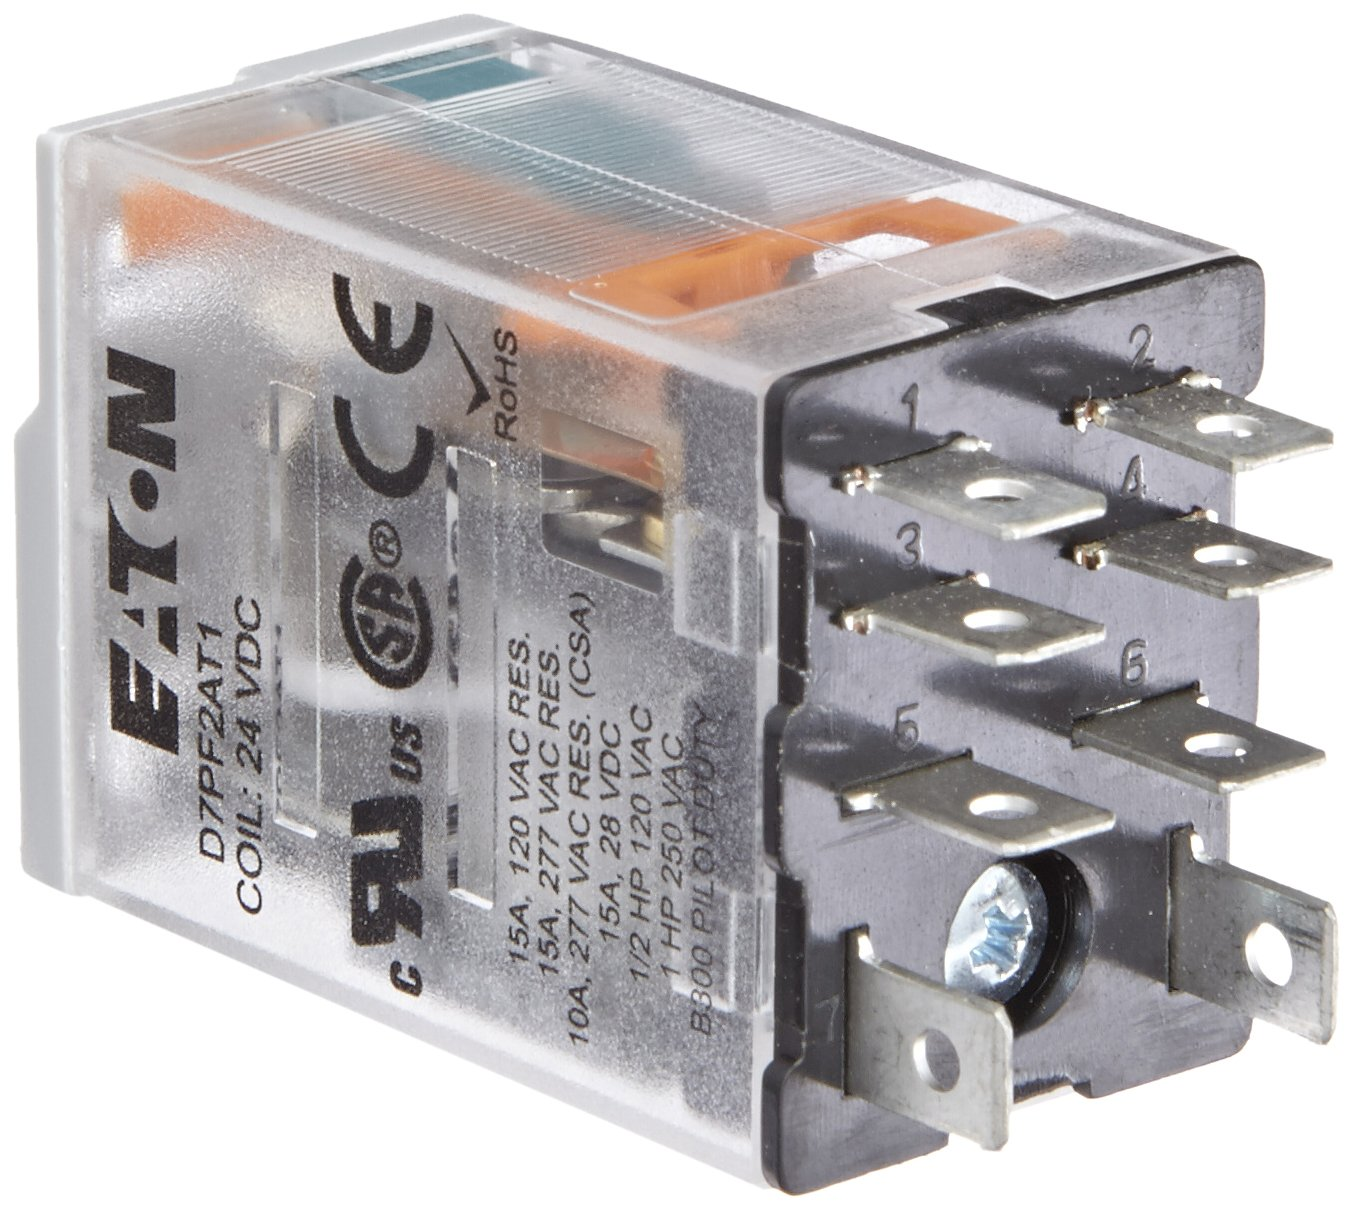 Eaton D7pf2at1 General Purpose Relay 15a Rated Current Dpdt Circuit It Can Uses With Power Supply Source 24vdc And Adjust Voltage Contact Configuration Coil 650ohm Resistance Electronic Relays